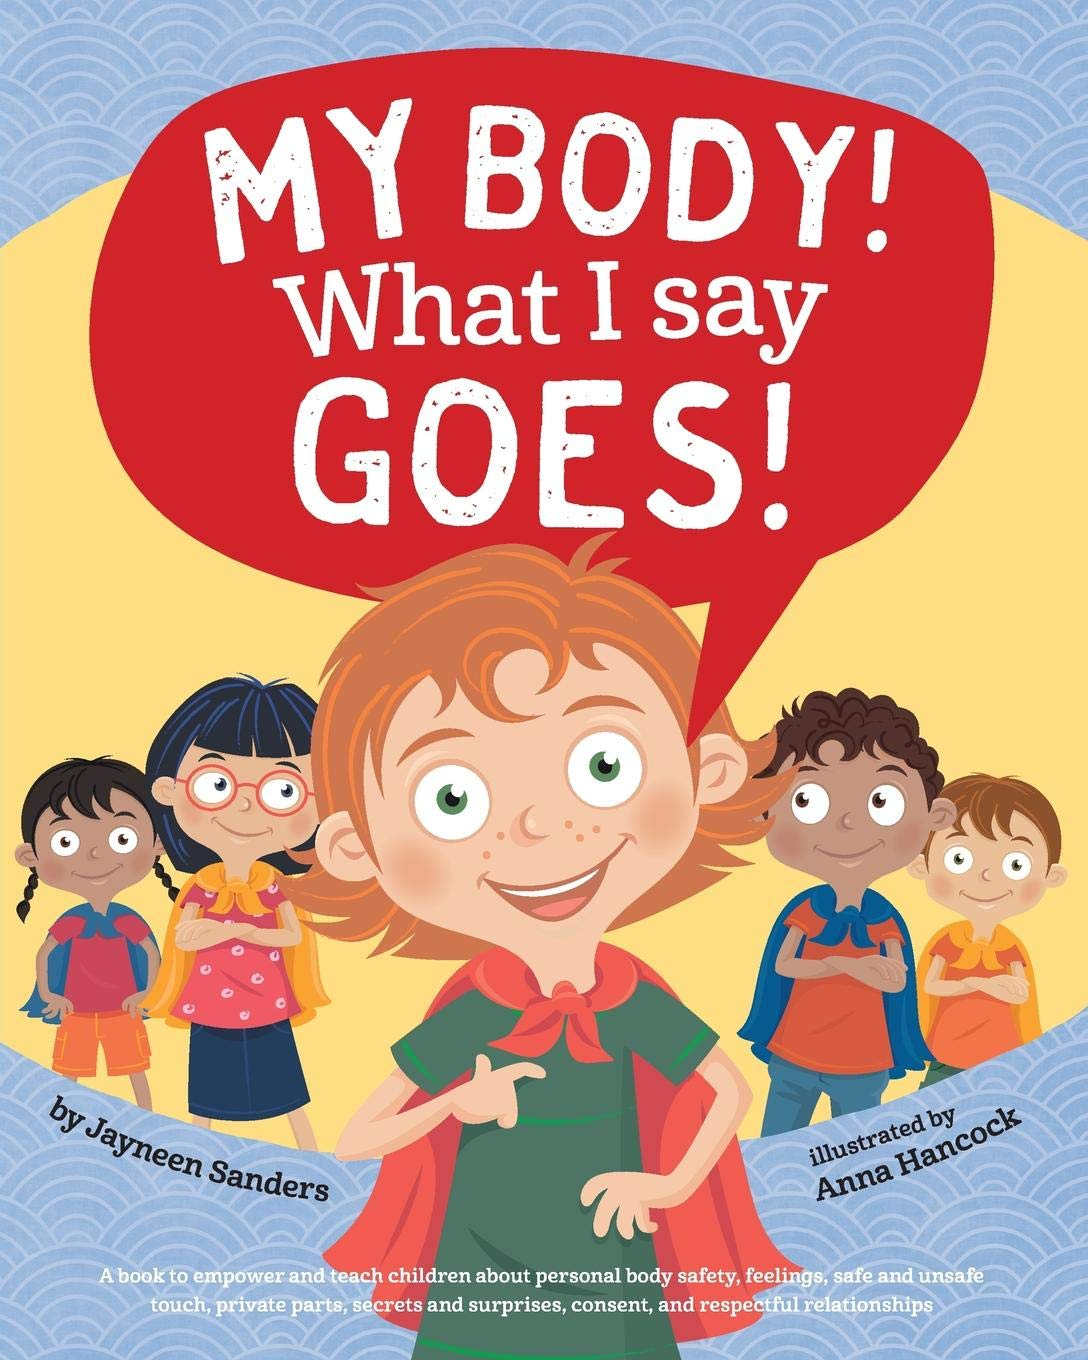 A book to empower and teach children about personal body safety, feelings,  safe and unsafe touch, private parts, secrets and surprises, consent, ...